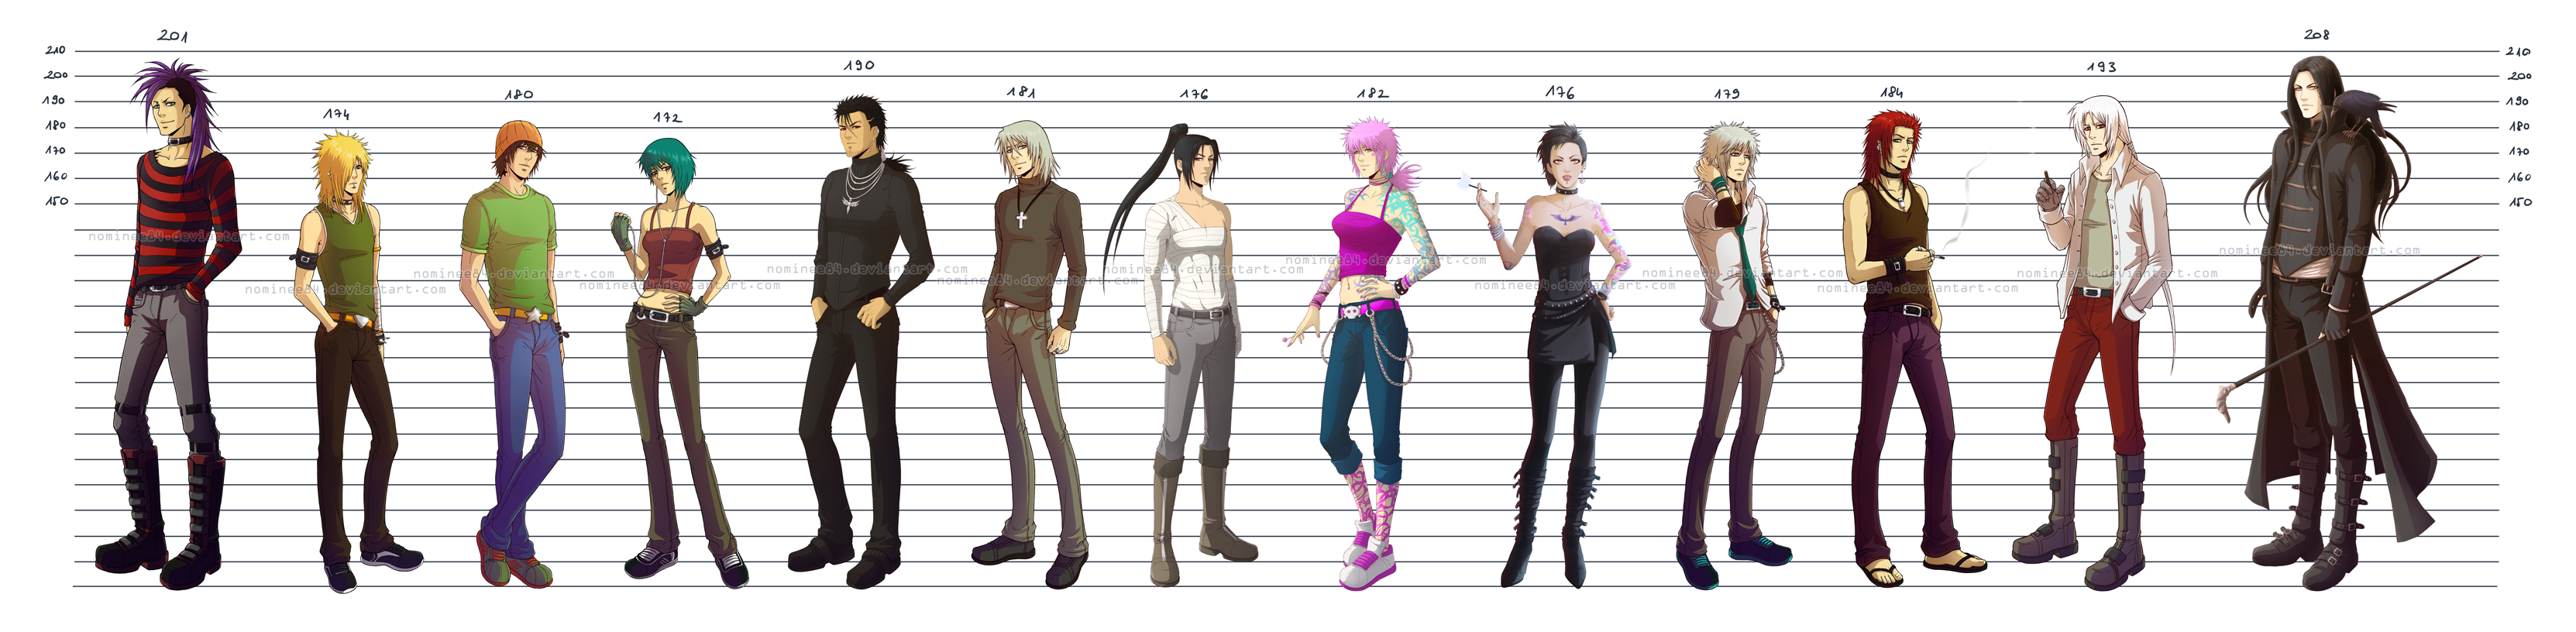 Anime Characters Height : Sealed character heights by nominee on deviantart